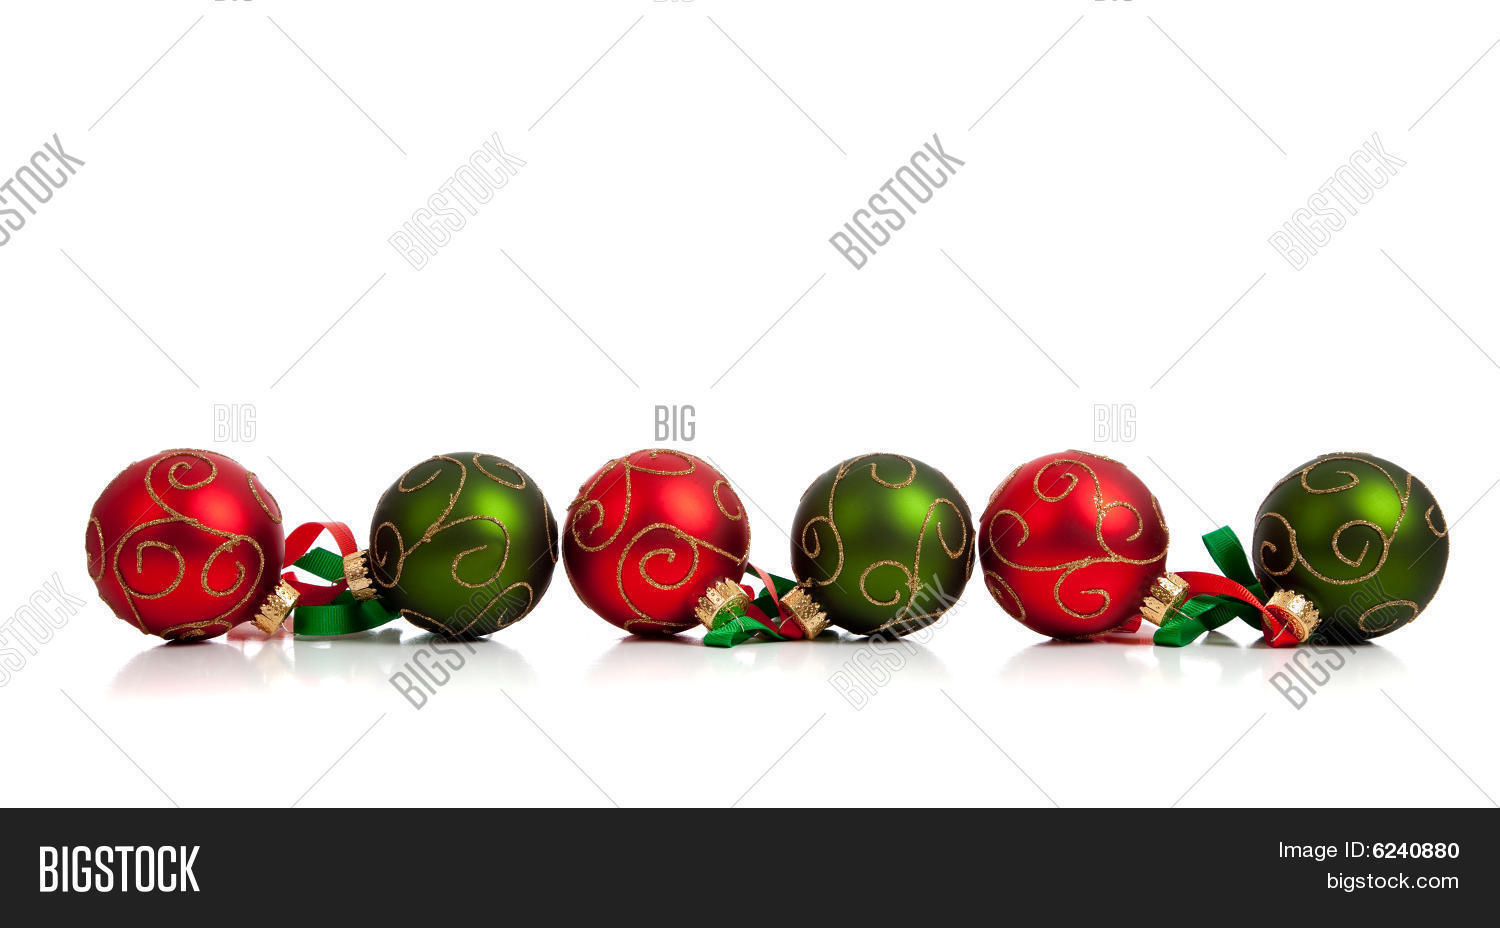 Red green christmas ornaments image photo bigstock for Red and green christmas decorations